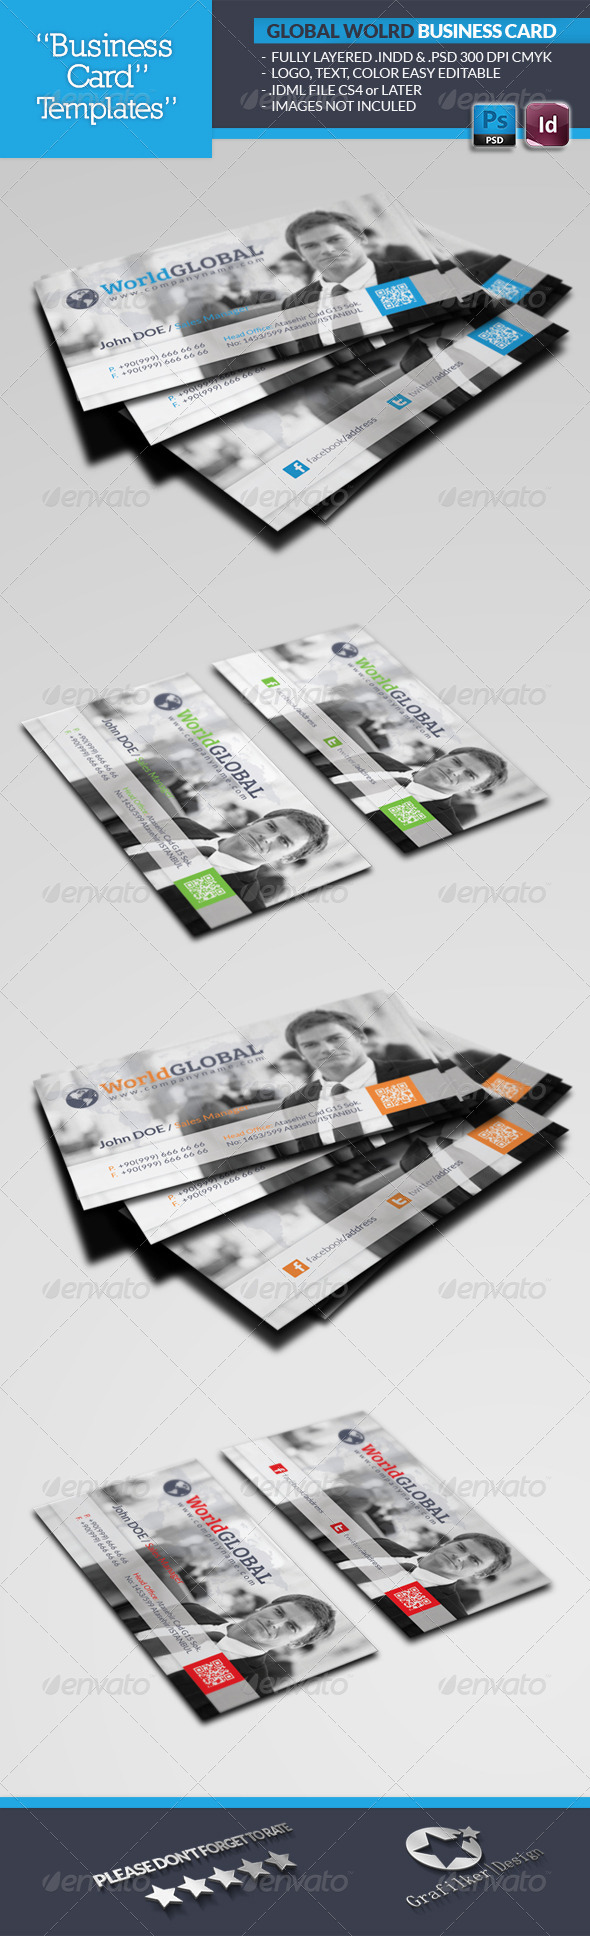 Global World Business Card Template - Corporate Business Cards